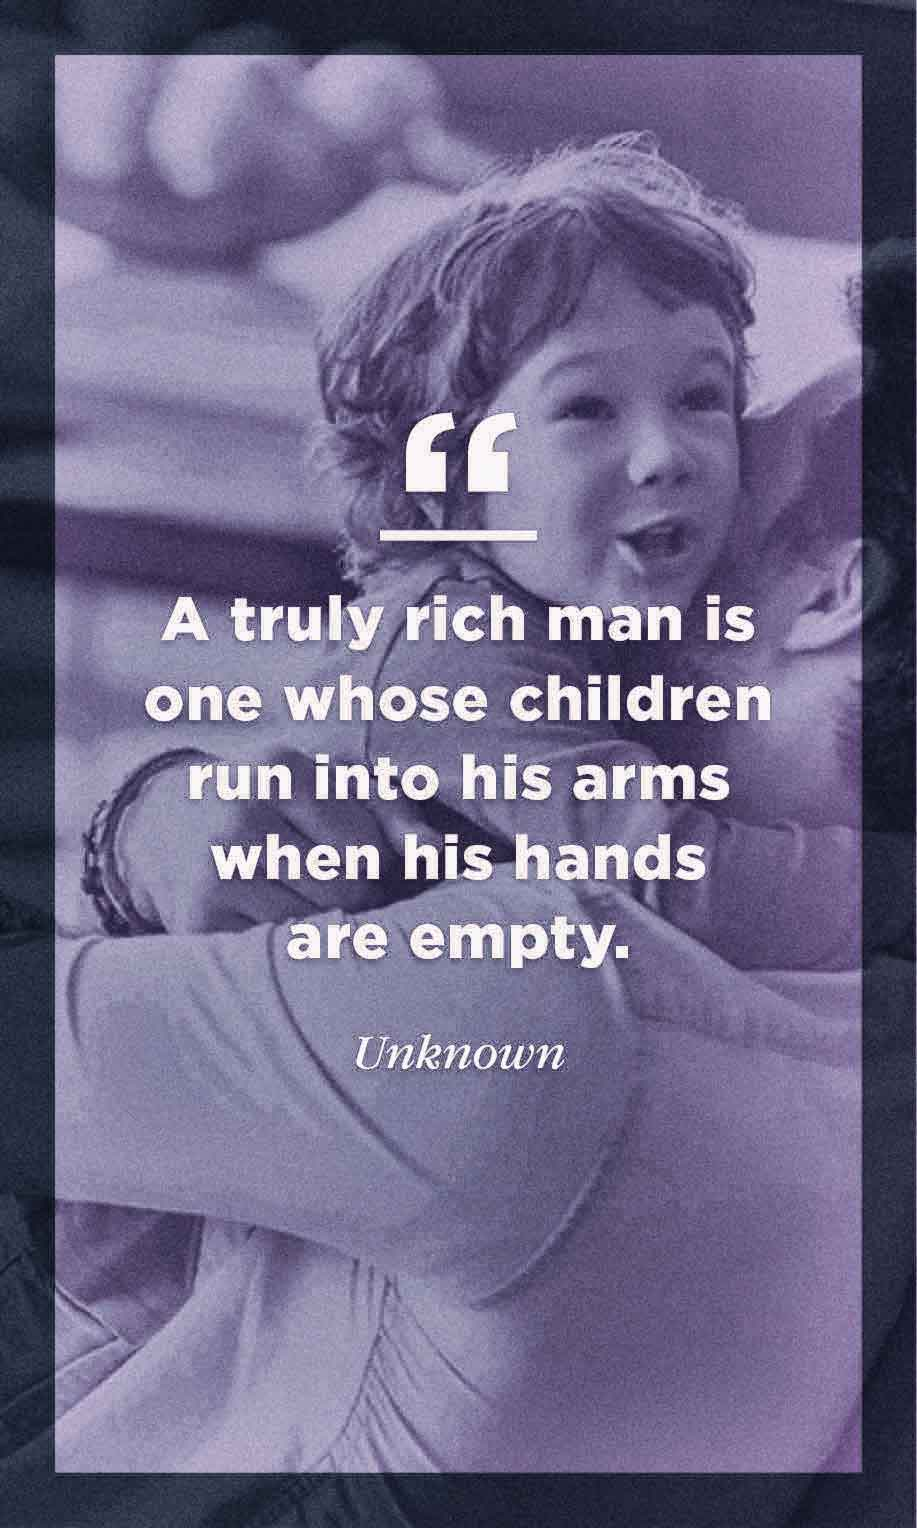 A truly rich man is one whose children run into his arms when his hands are empty